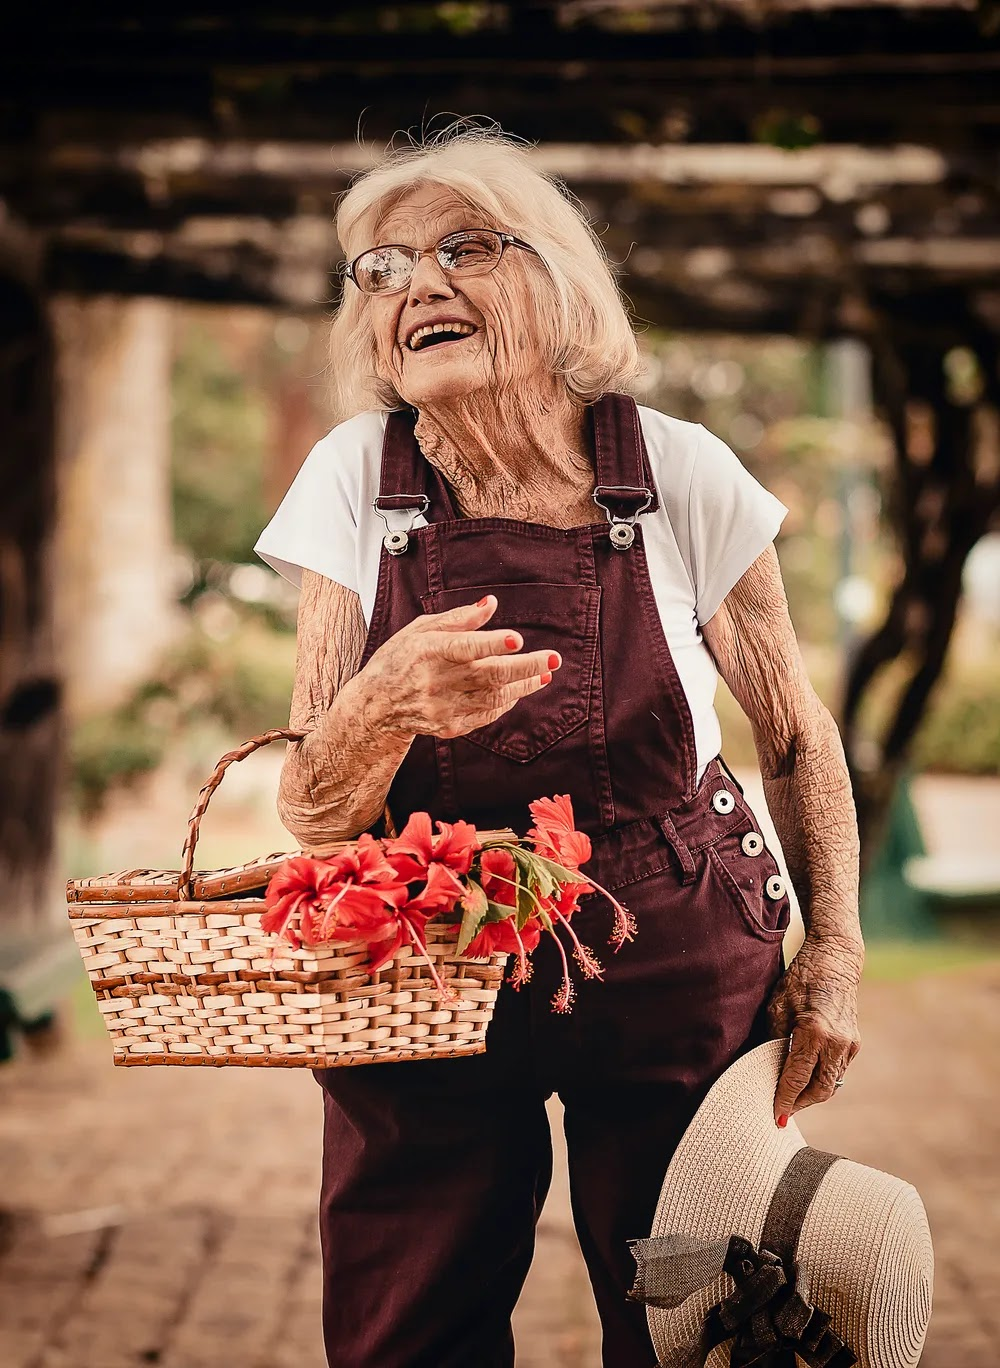 Stock photo from pexels of an elderly lady in red dungarees holding a basket of flowers